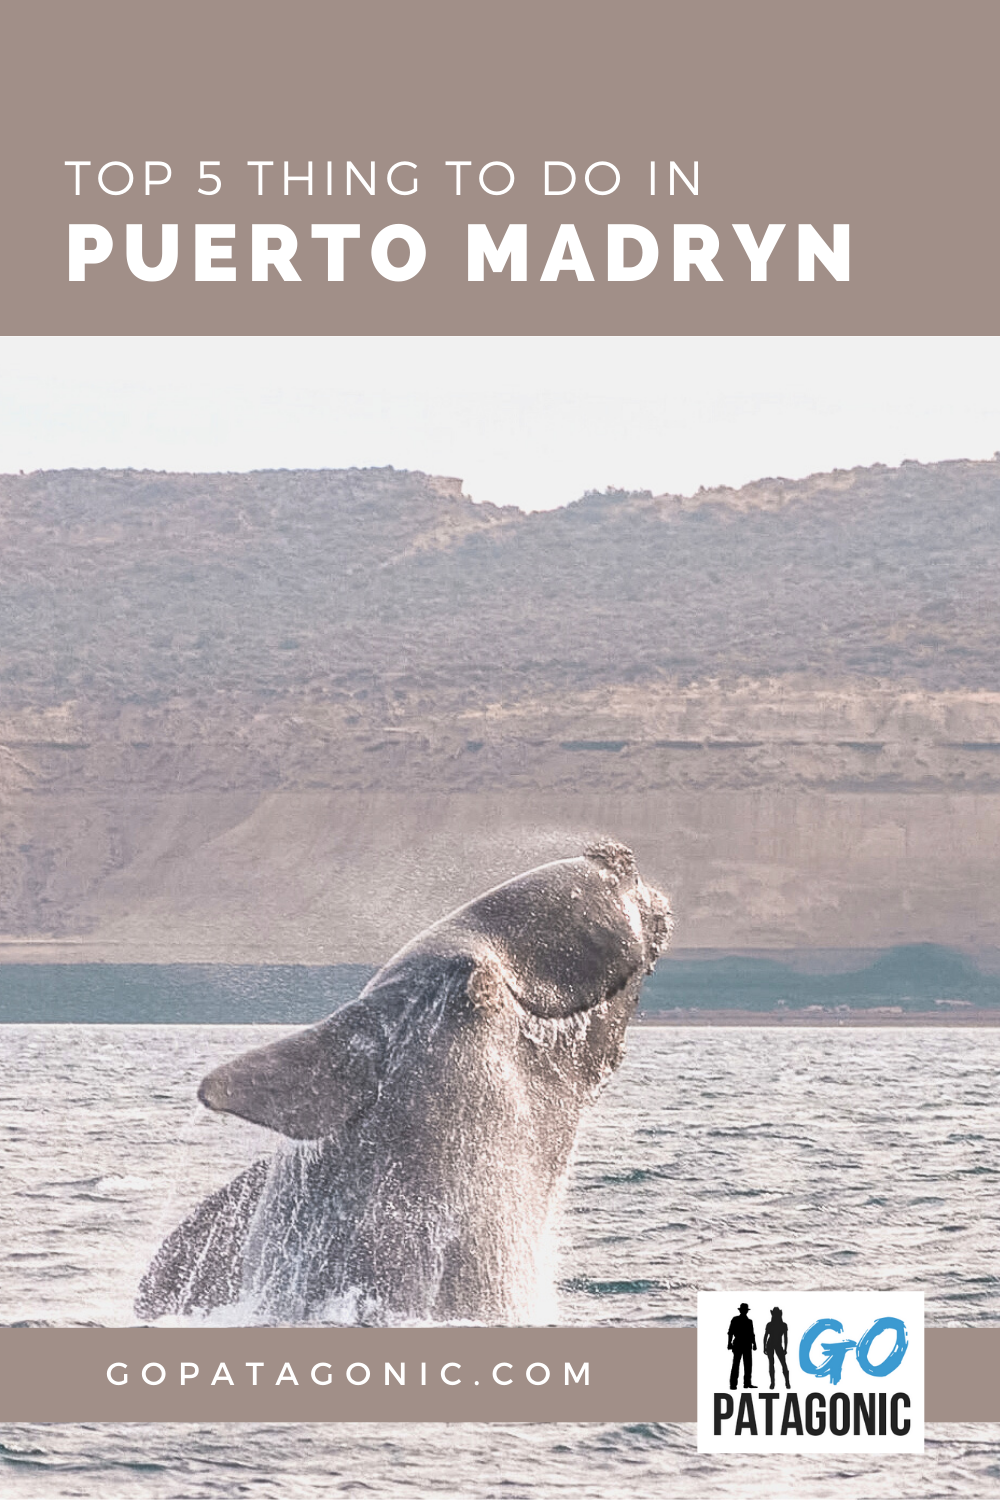 Things to do in Puerto Madryn top 5